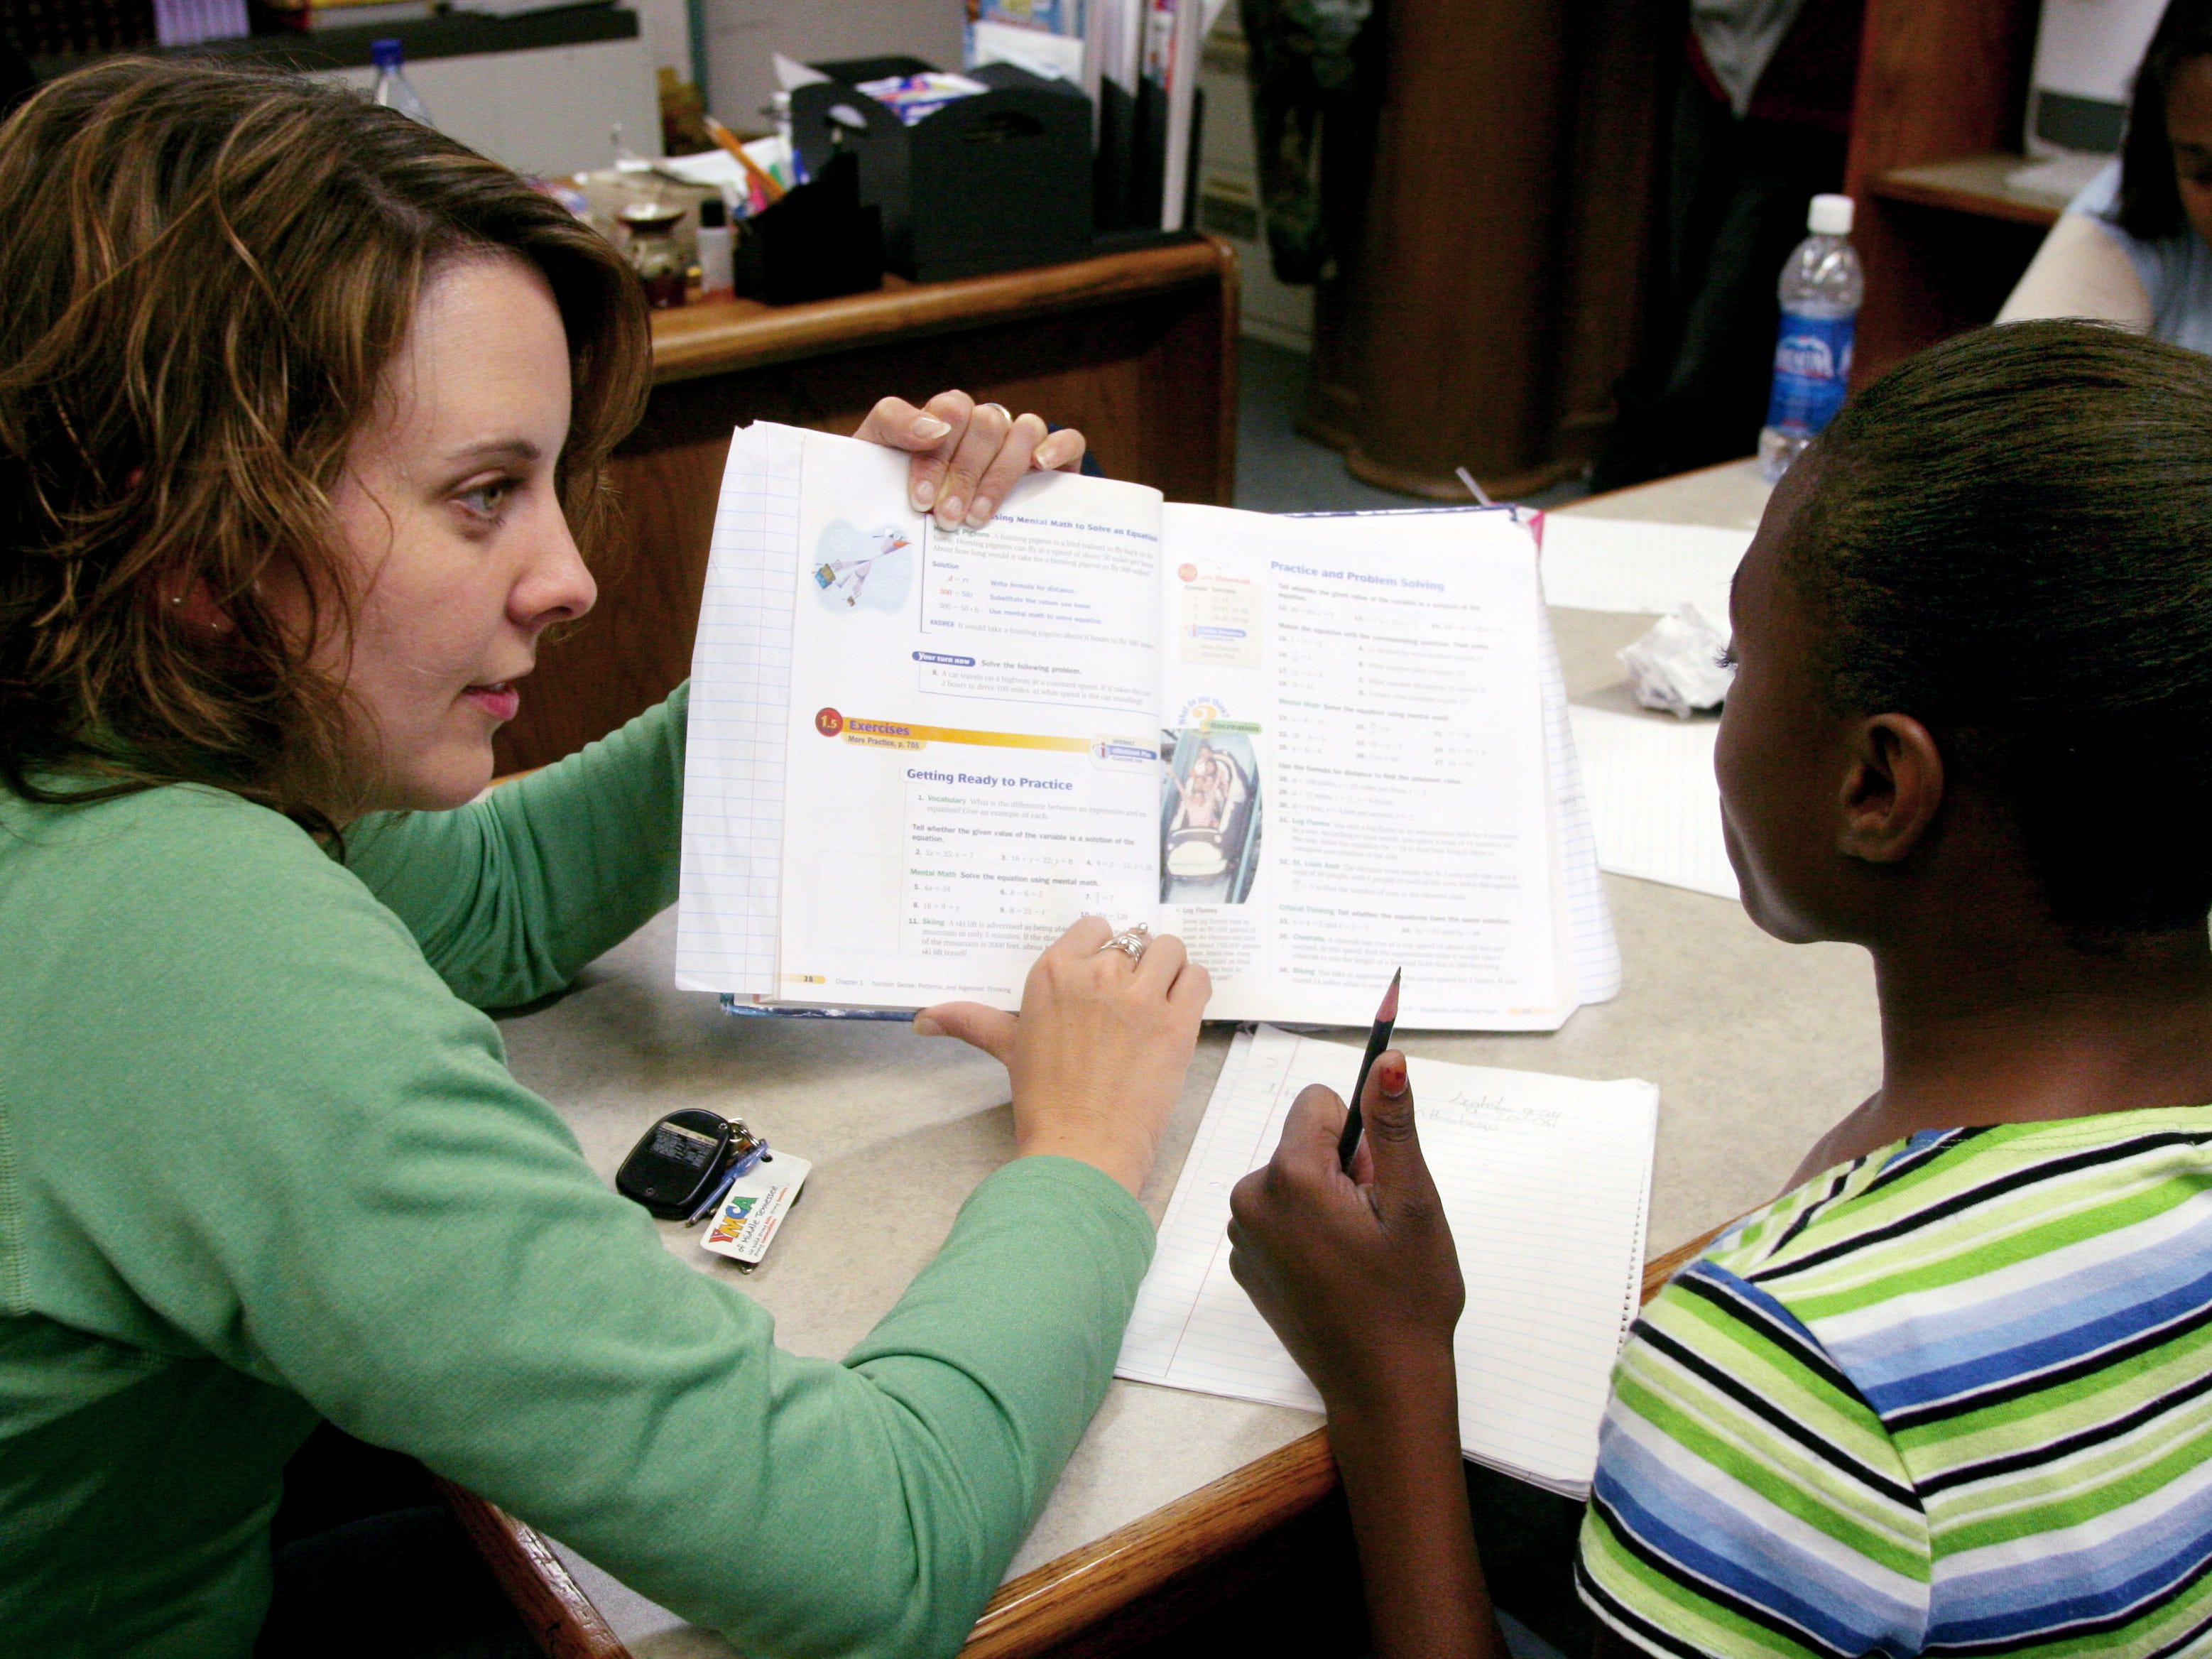 """Jennifer Fouse, campus Presbyterian minister at Vanderbilt University, helps Dalewood Middle School student Scotisha Gray, 13, with her math homework during """"Plus Time"""" at the Cayce Family Resource Center inside the Martha O'Bryan Center on Sept. 20, 2006."""